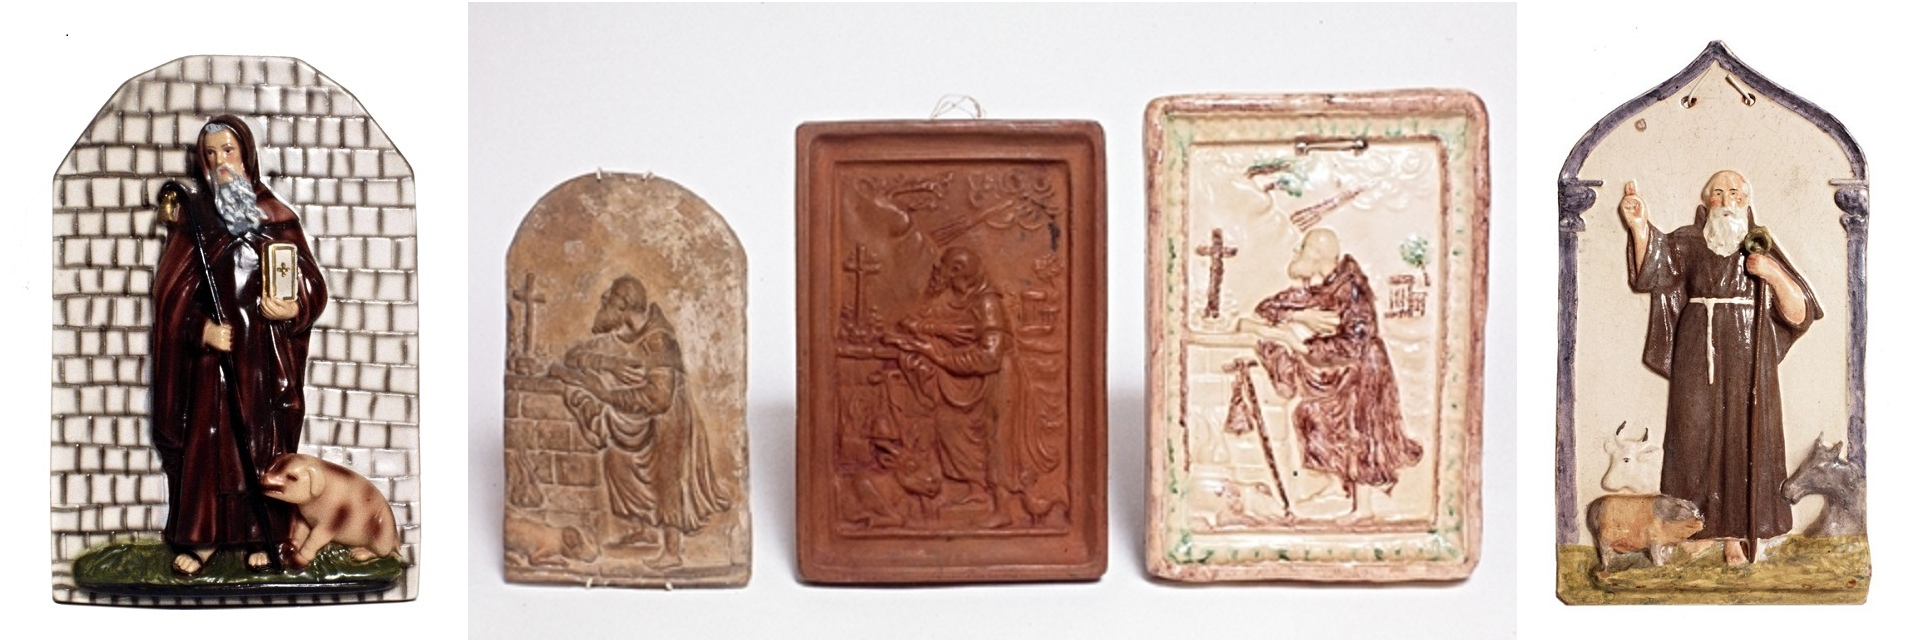 Collection of devotional ceramic objects